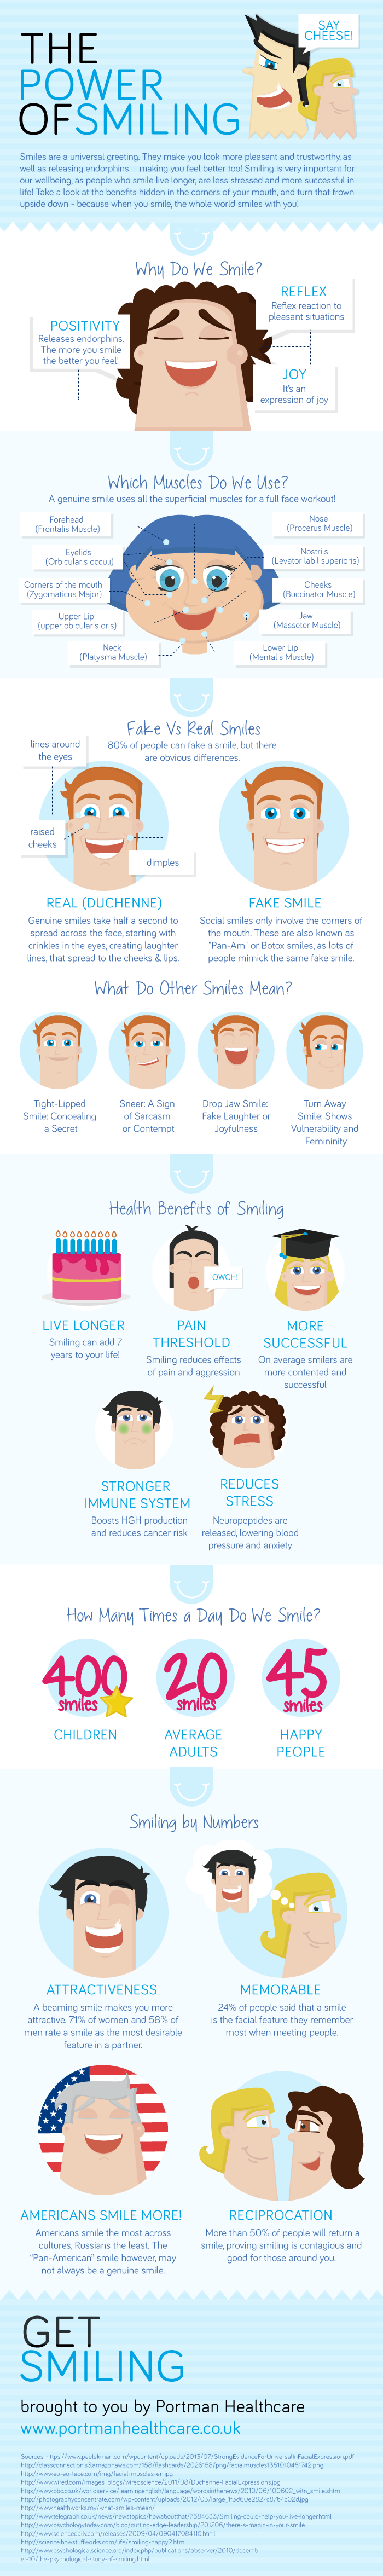 Infographic: The Power of Smiling